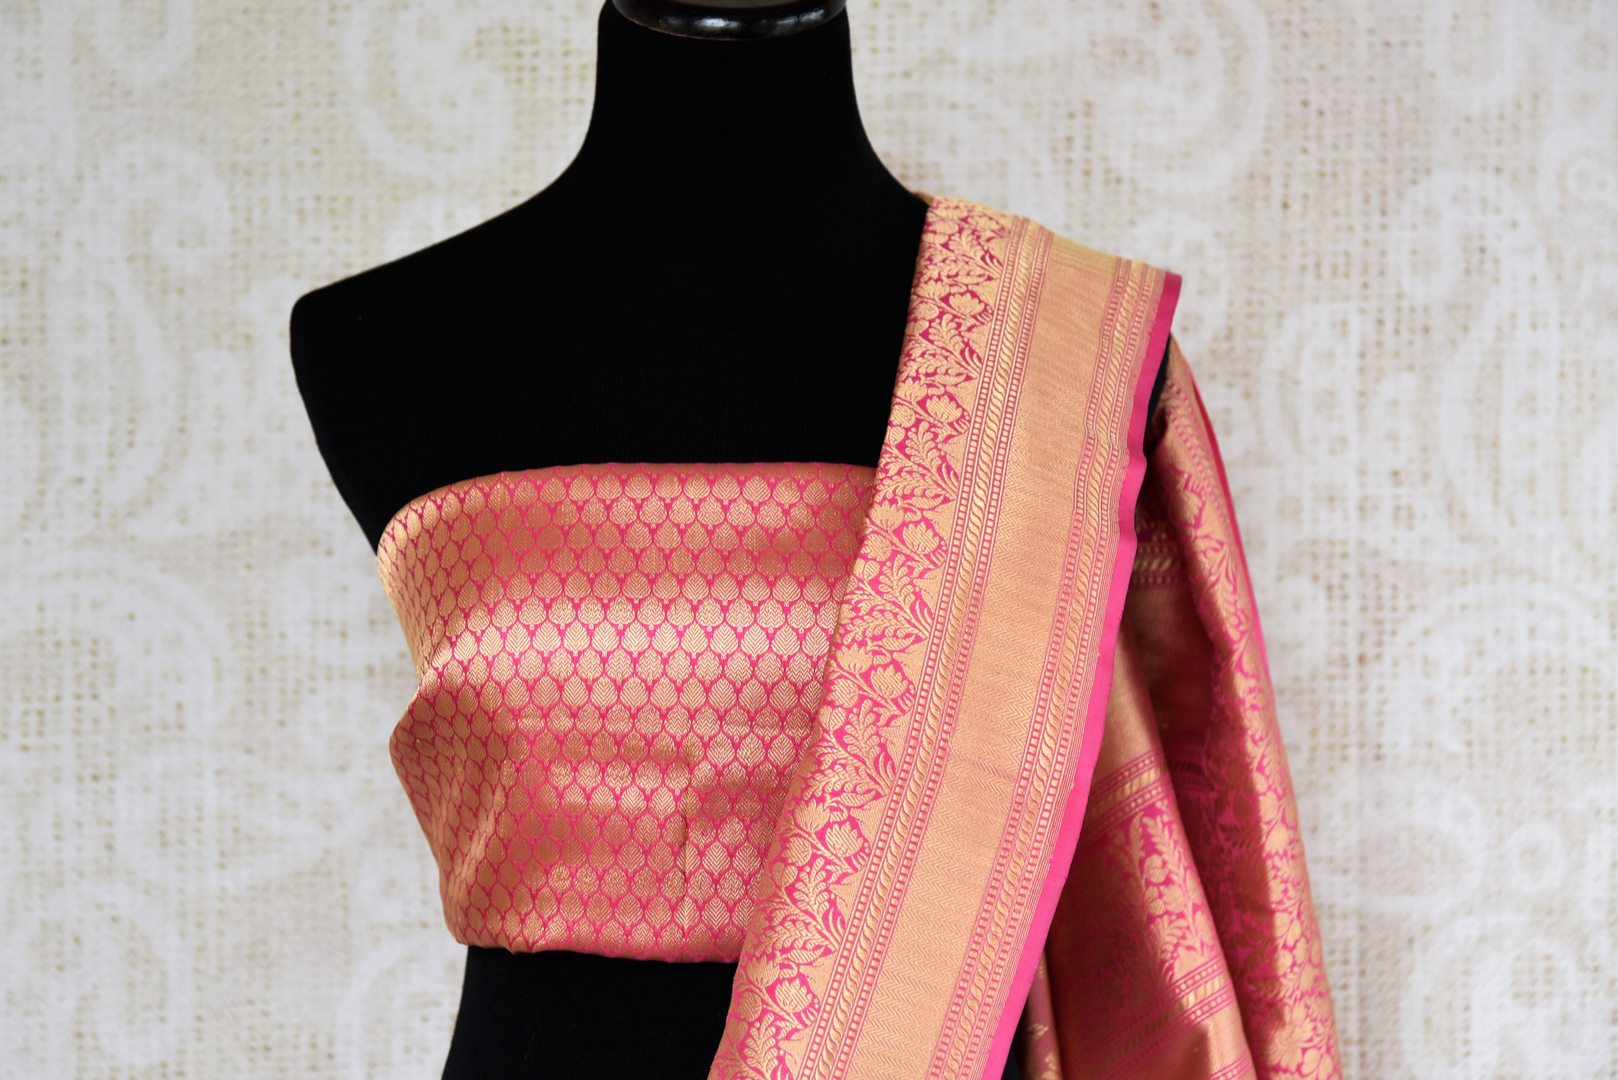 Buy online traditional pink Banarasi silk sari with floral zari buta online in USA. The saree is a stunning drape for an ethnic Indian look at weddings and special occasions. Find more such exquisite Indian silk sarees, handloom saris in USA at Pure Elegance Indian fashion store. Shop now.-blouse pallu